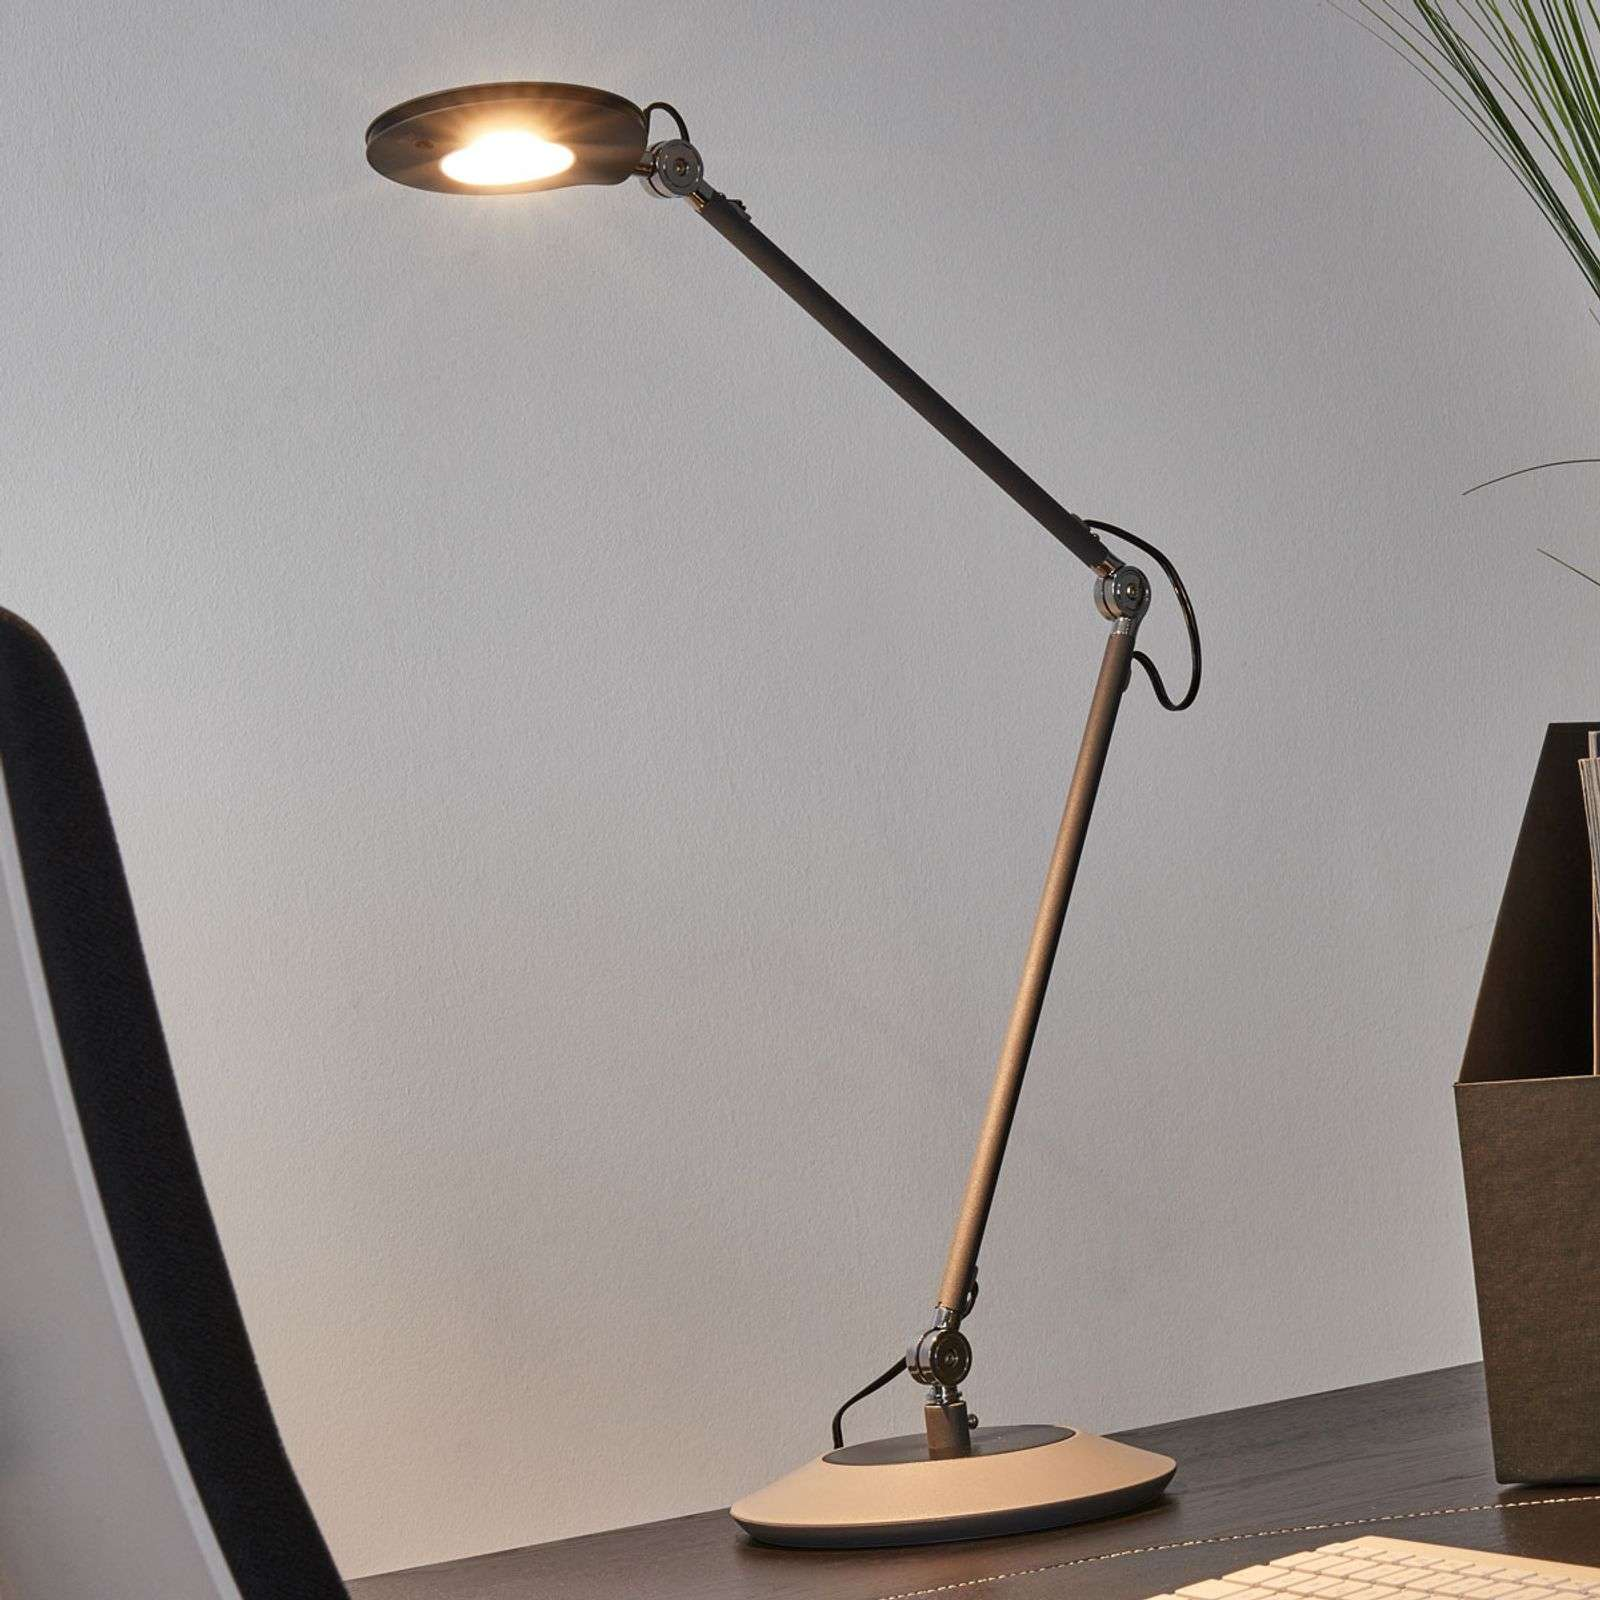 Lampe à poser LED Roderic anthracite